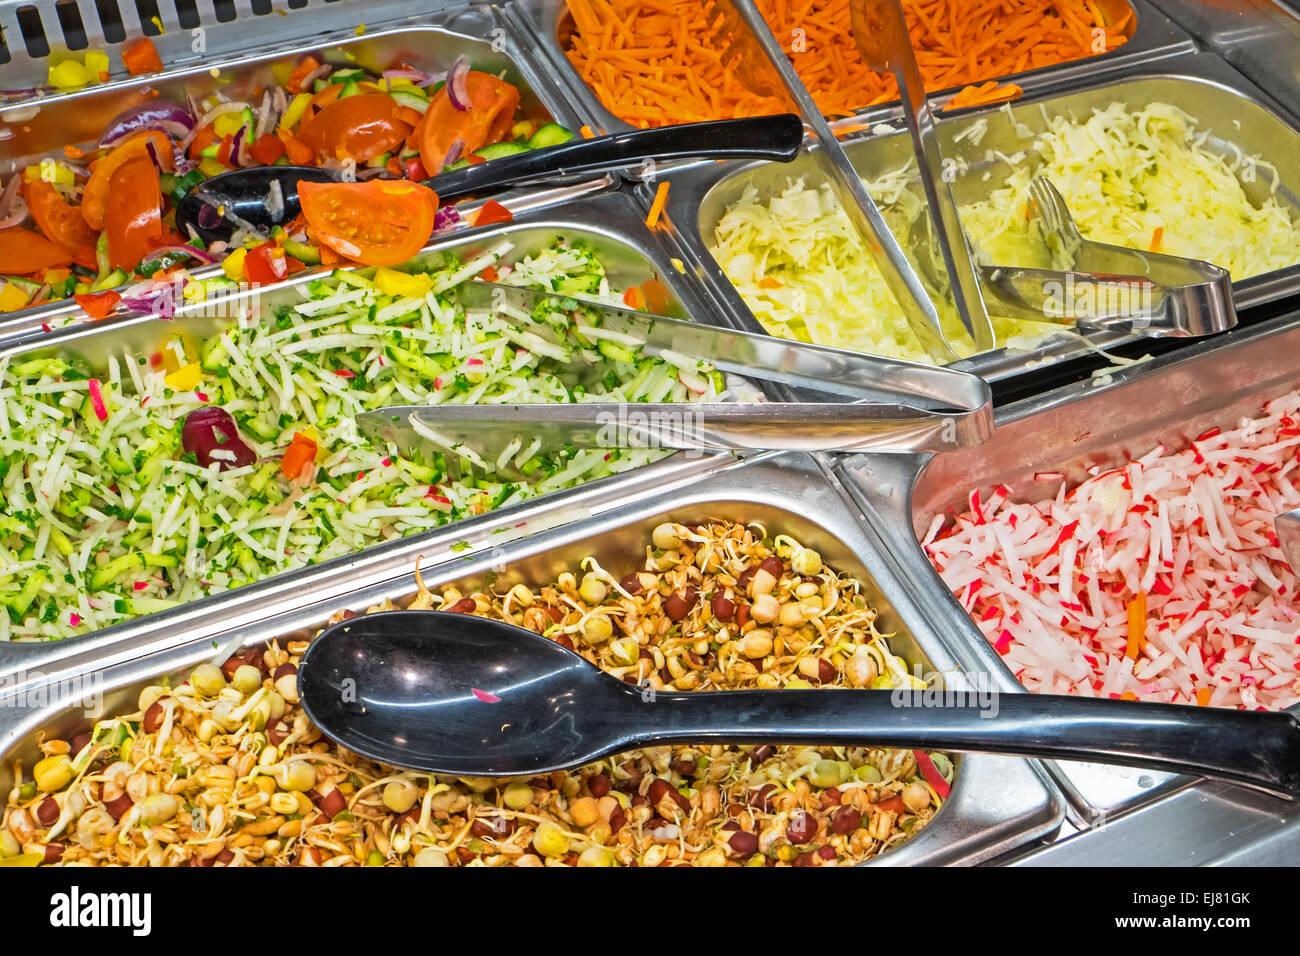 Buffet Di Insalate Miste : Buffet di insalate foto immagine stock  alamy